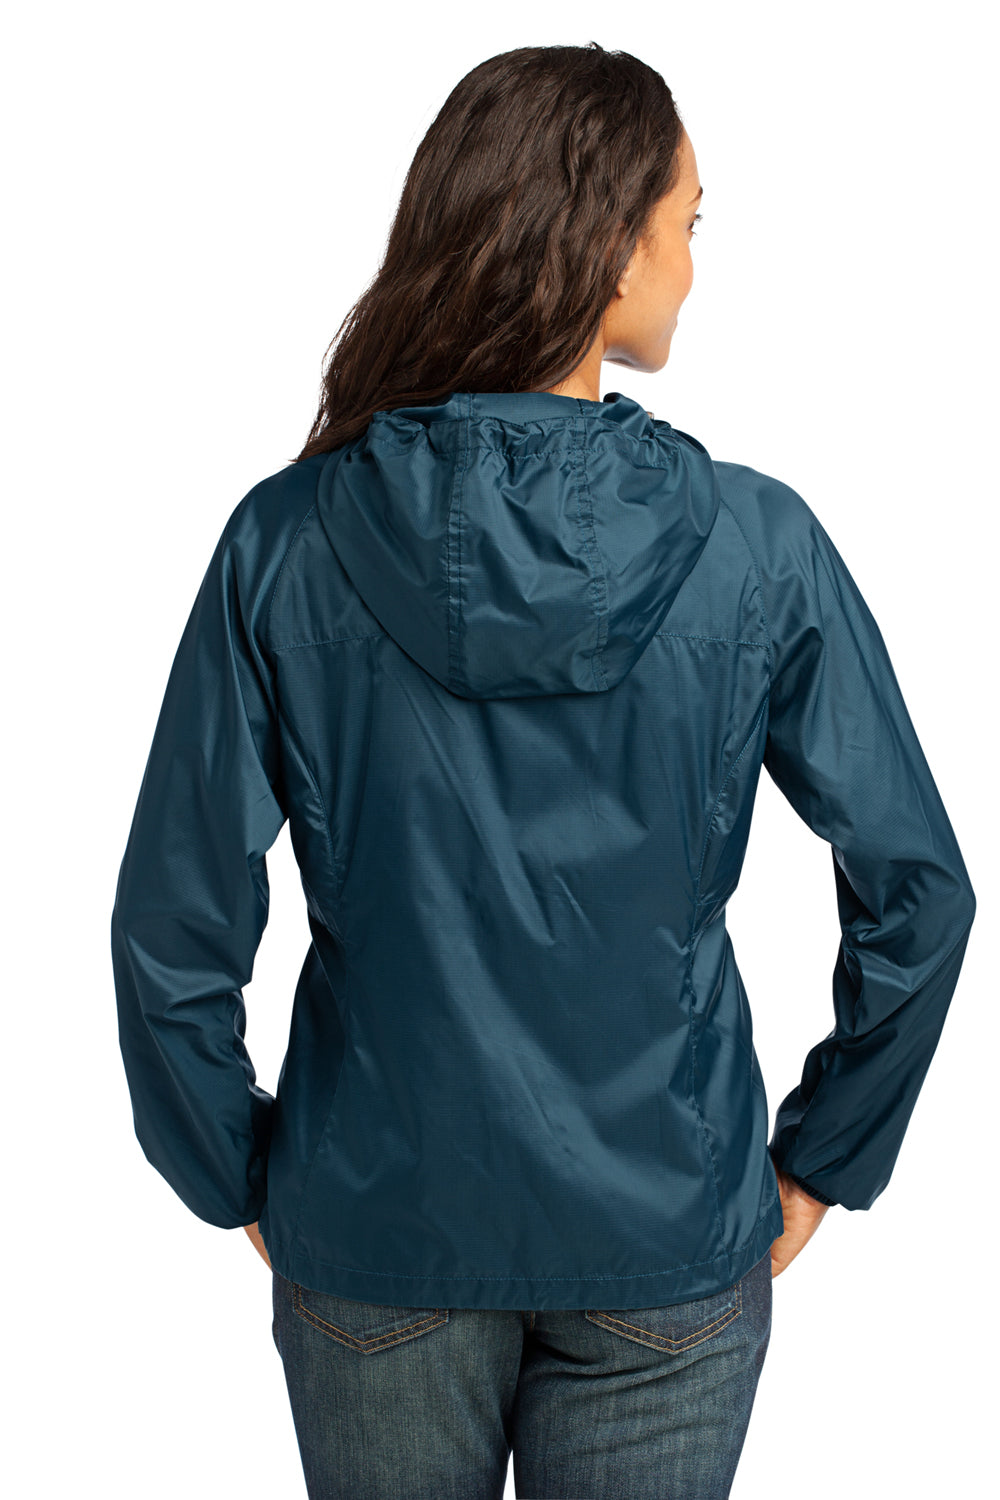 Eddie Bauer EB501 Womens Packable Wind Resistant Full Zip Hooded Wind Jacket Adriatic Blue Back